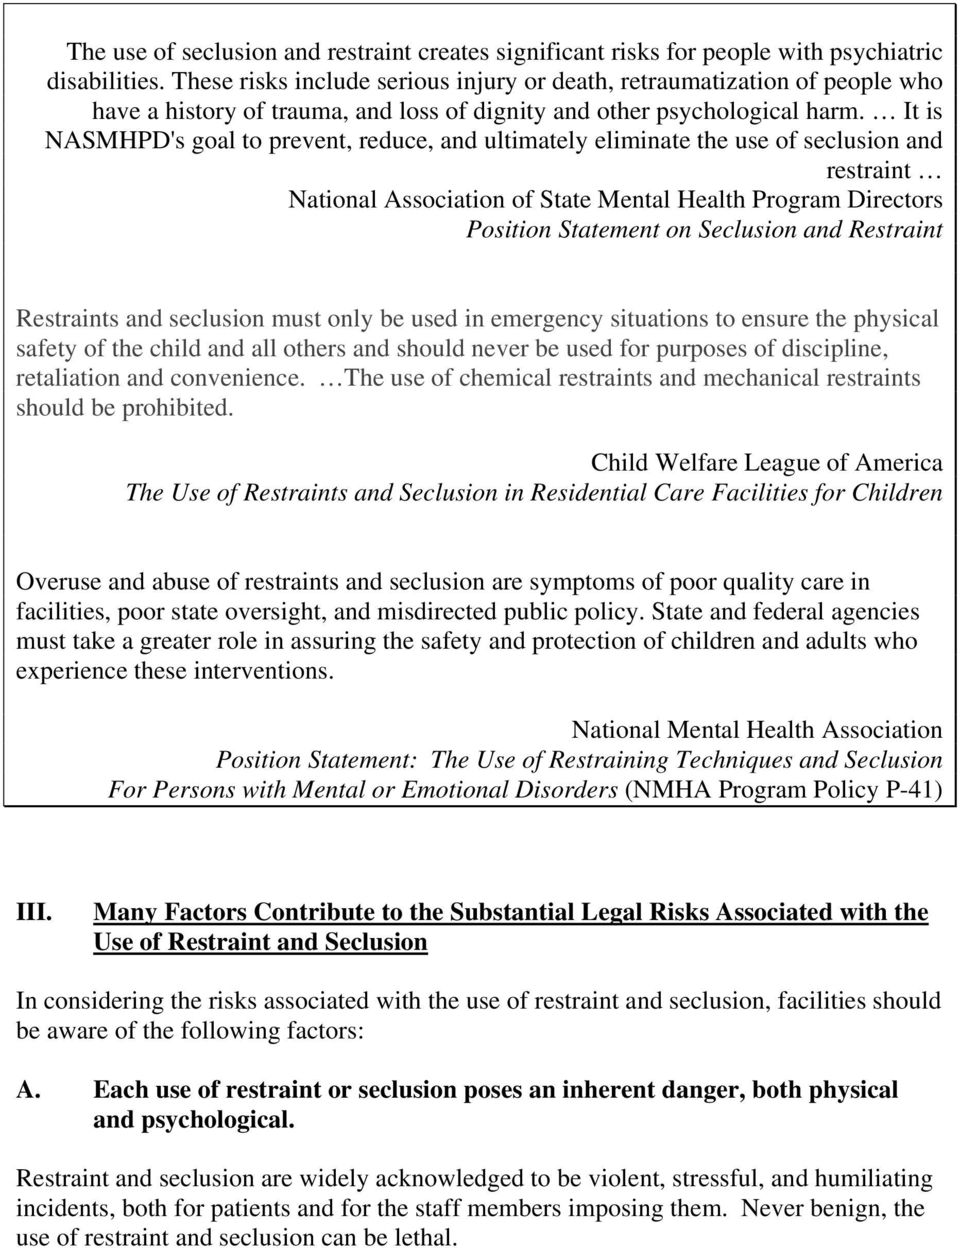 It is NASMHPD's goal to prevent, reduce, and ultimately eliminate the use of seclusion and restraint National Association of State Mental Health Program Directors Position Statement on Seclusion and